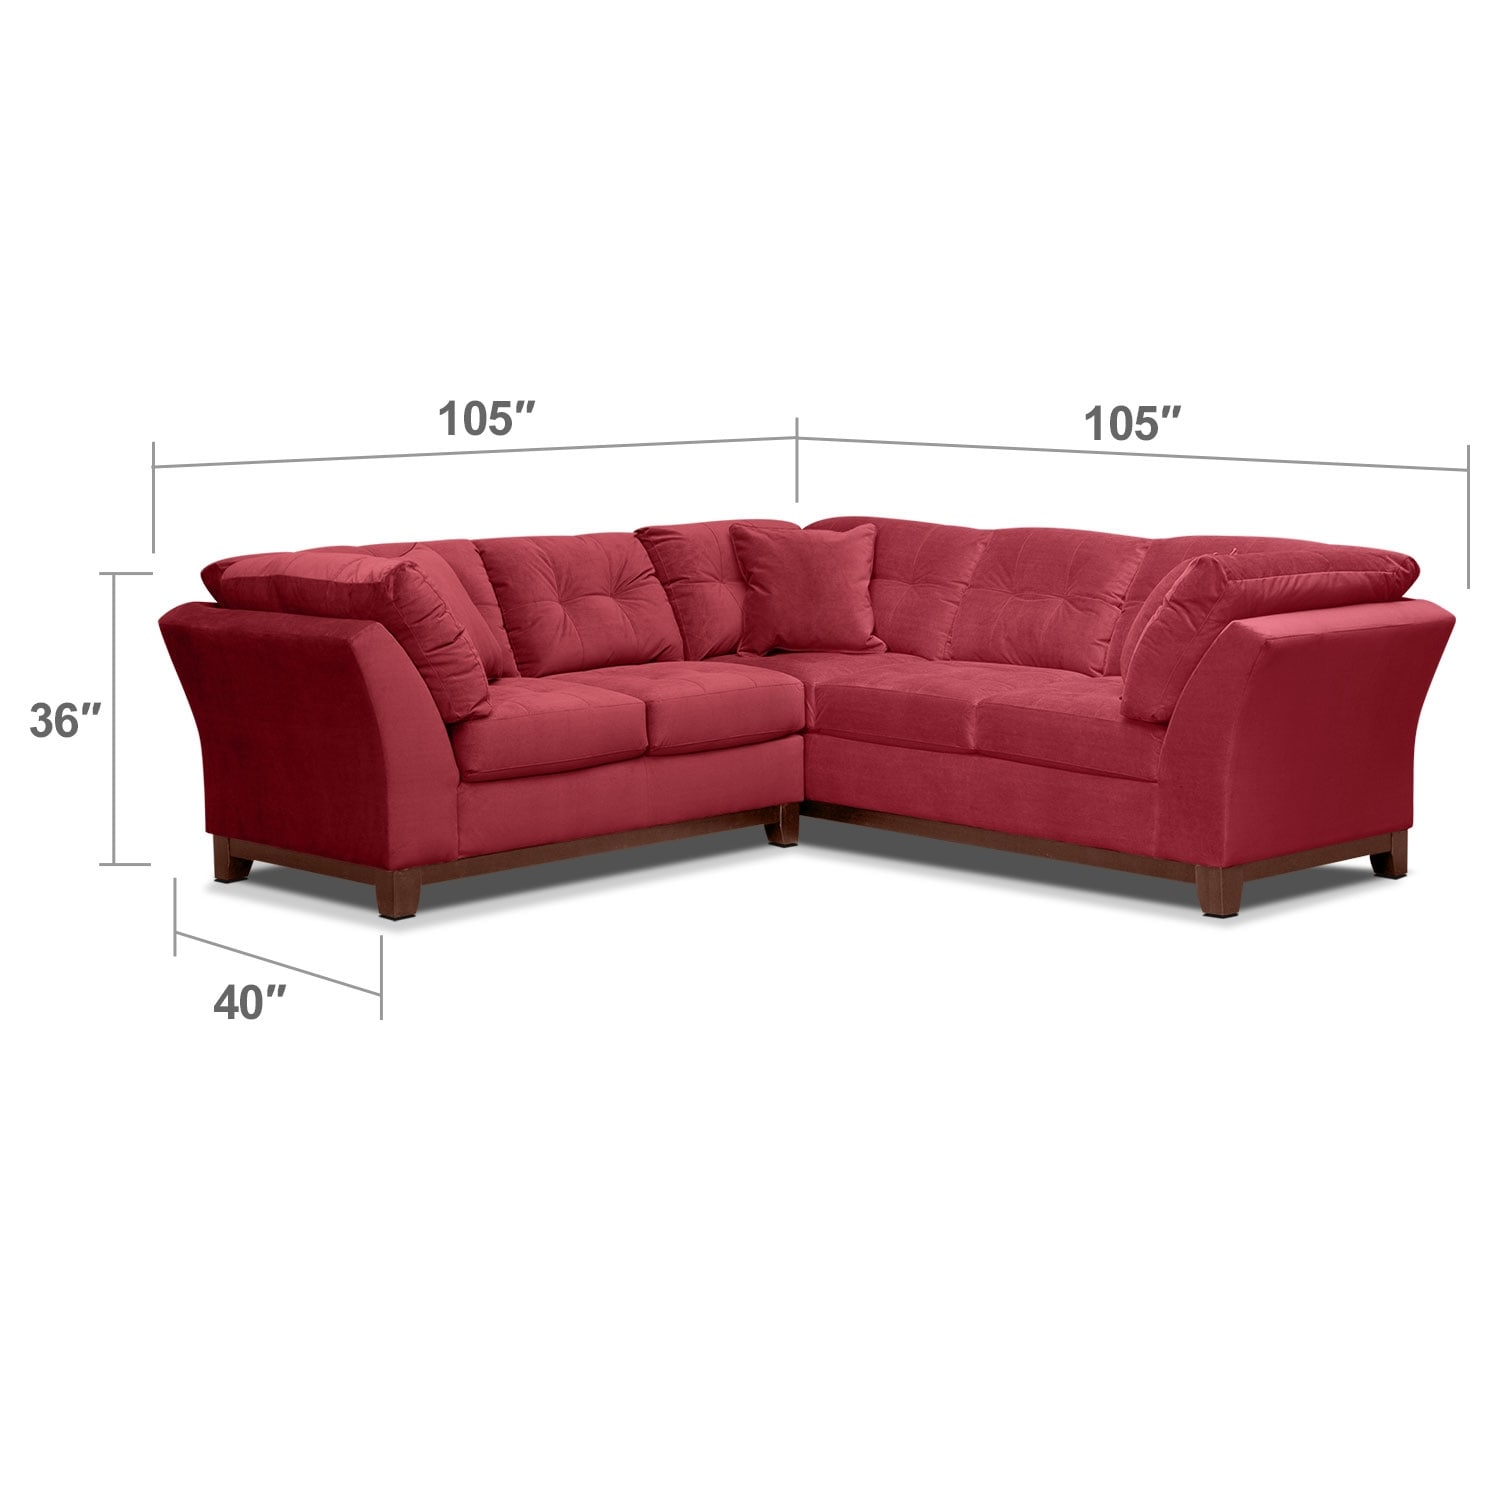 """Living Room Furniture - Solace 2-Piece Right-Facing 105"""" Sofa Sectional - Poppy"""